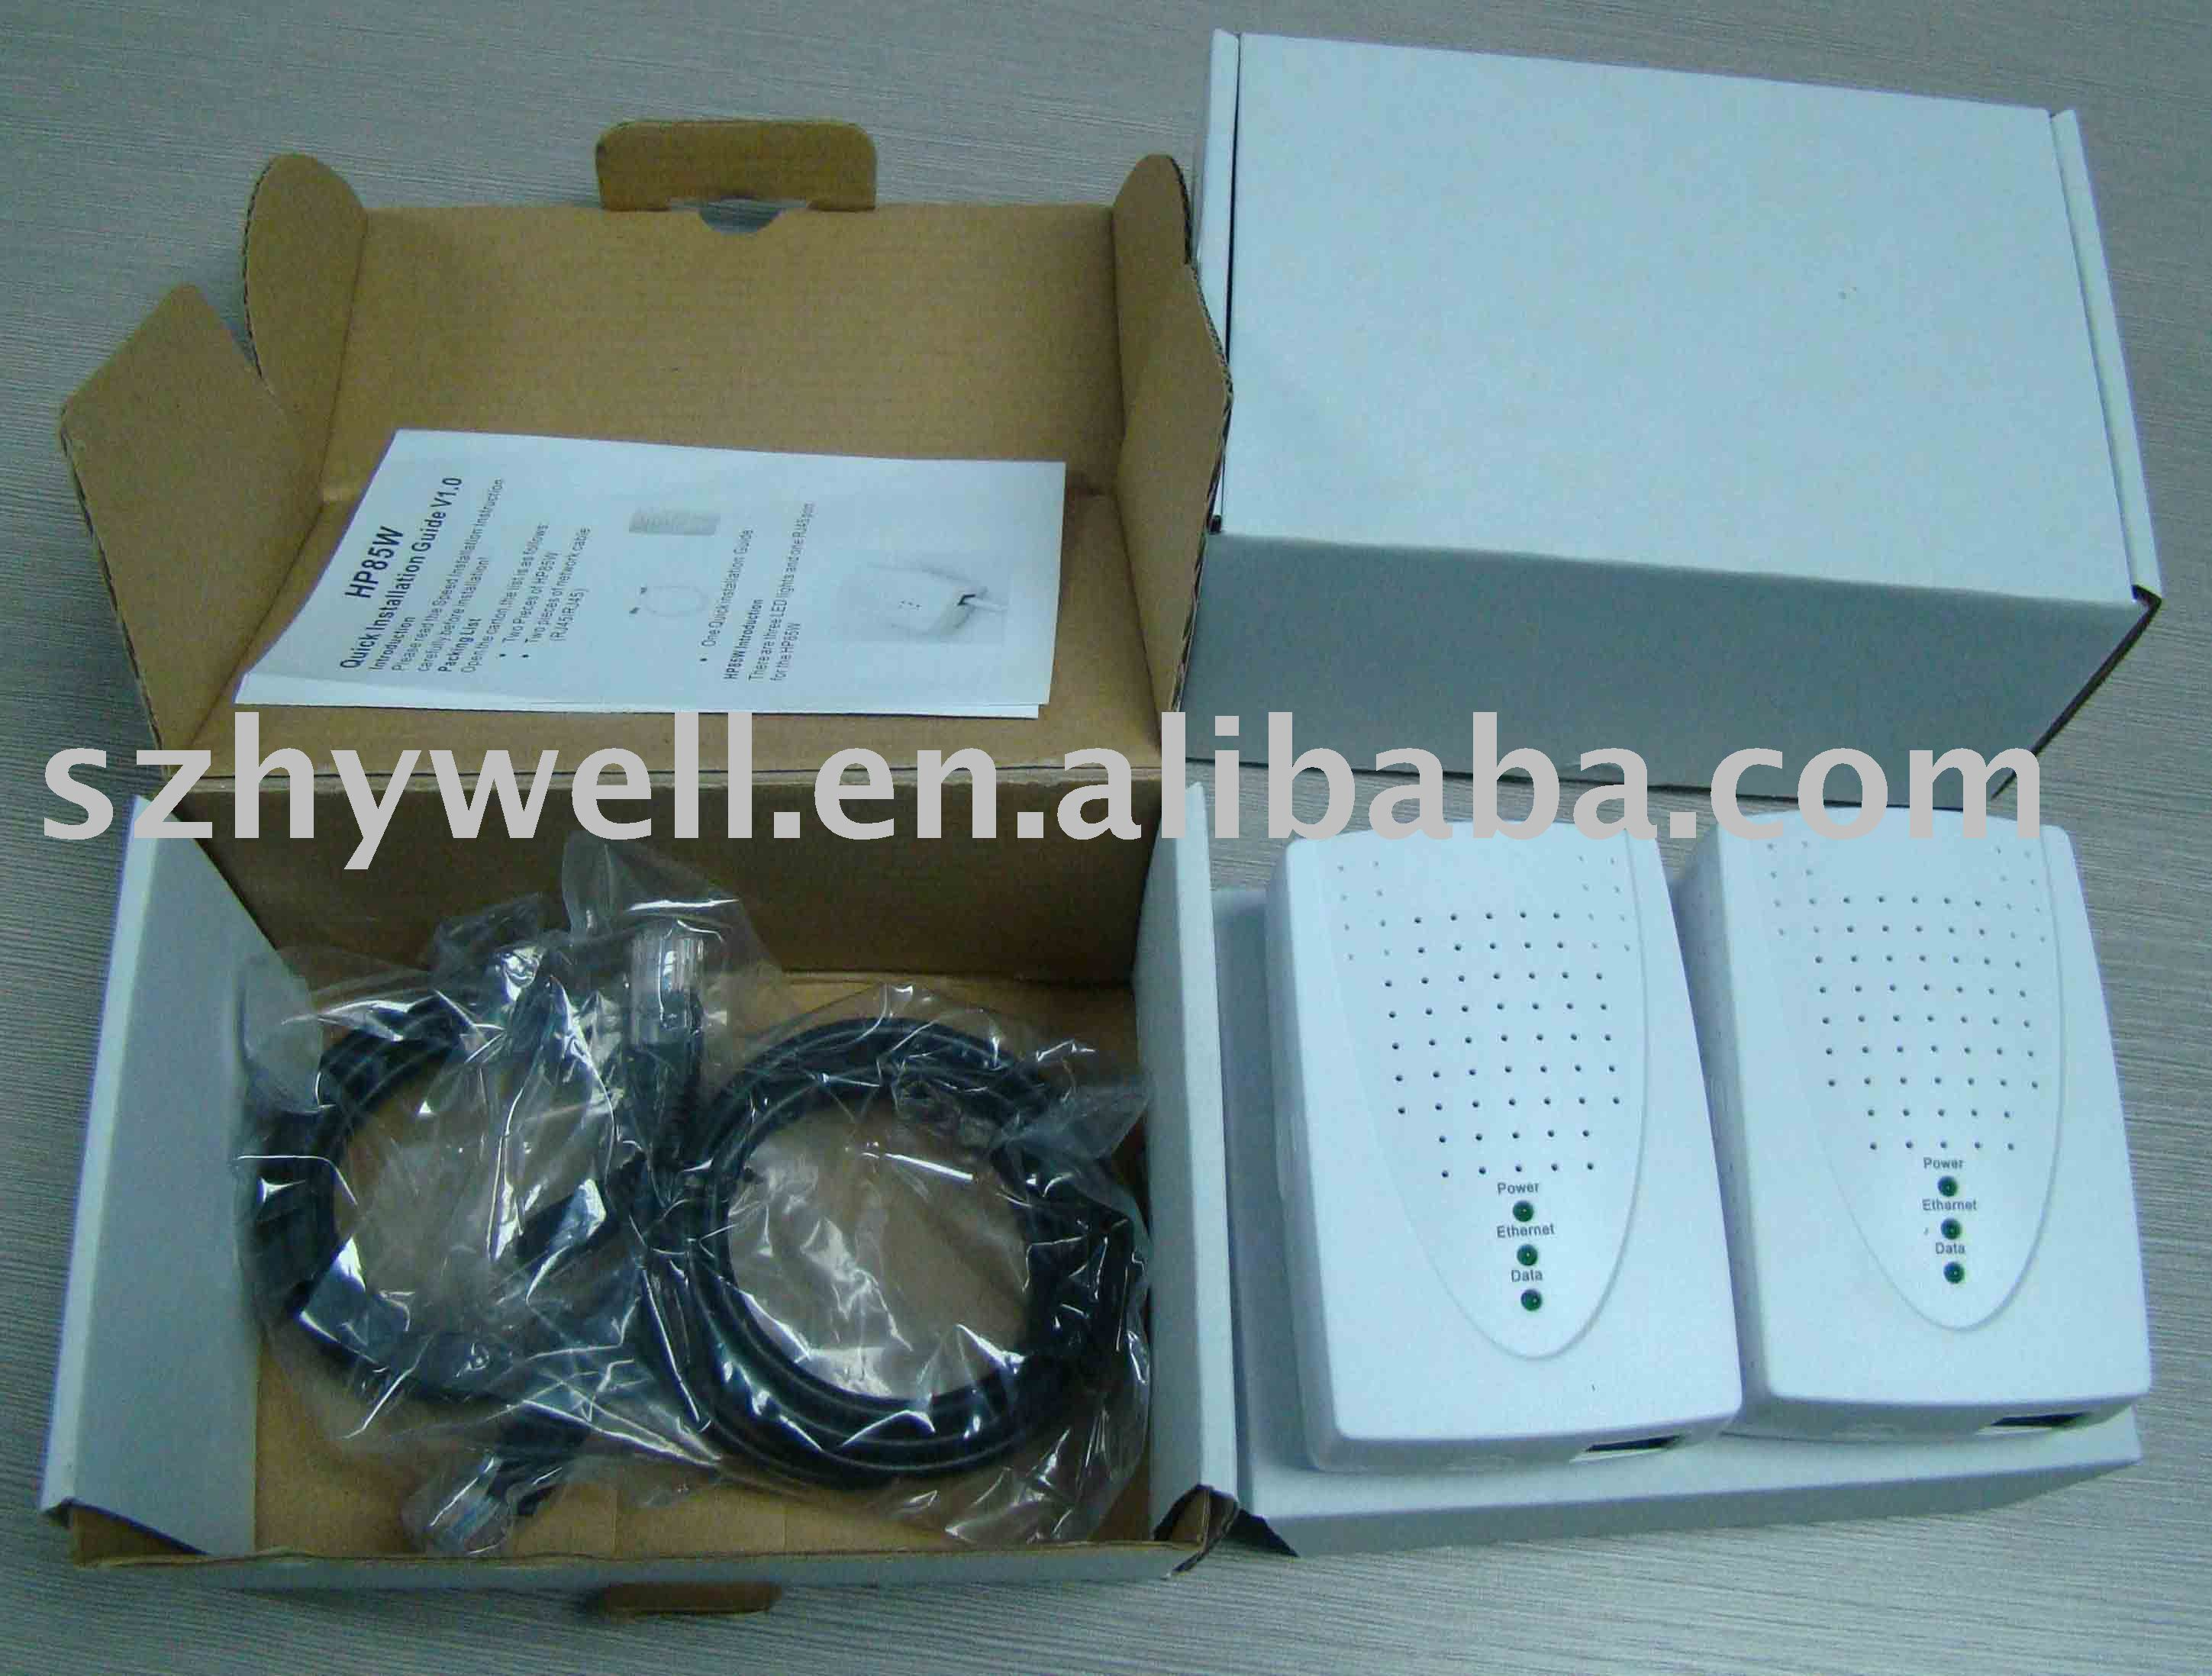 Homeplug Ethernet Adapter for Powerline Adaptor